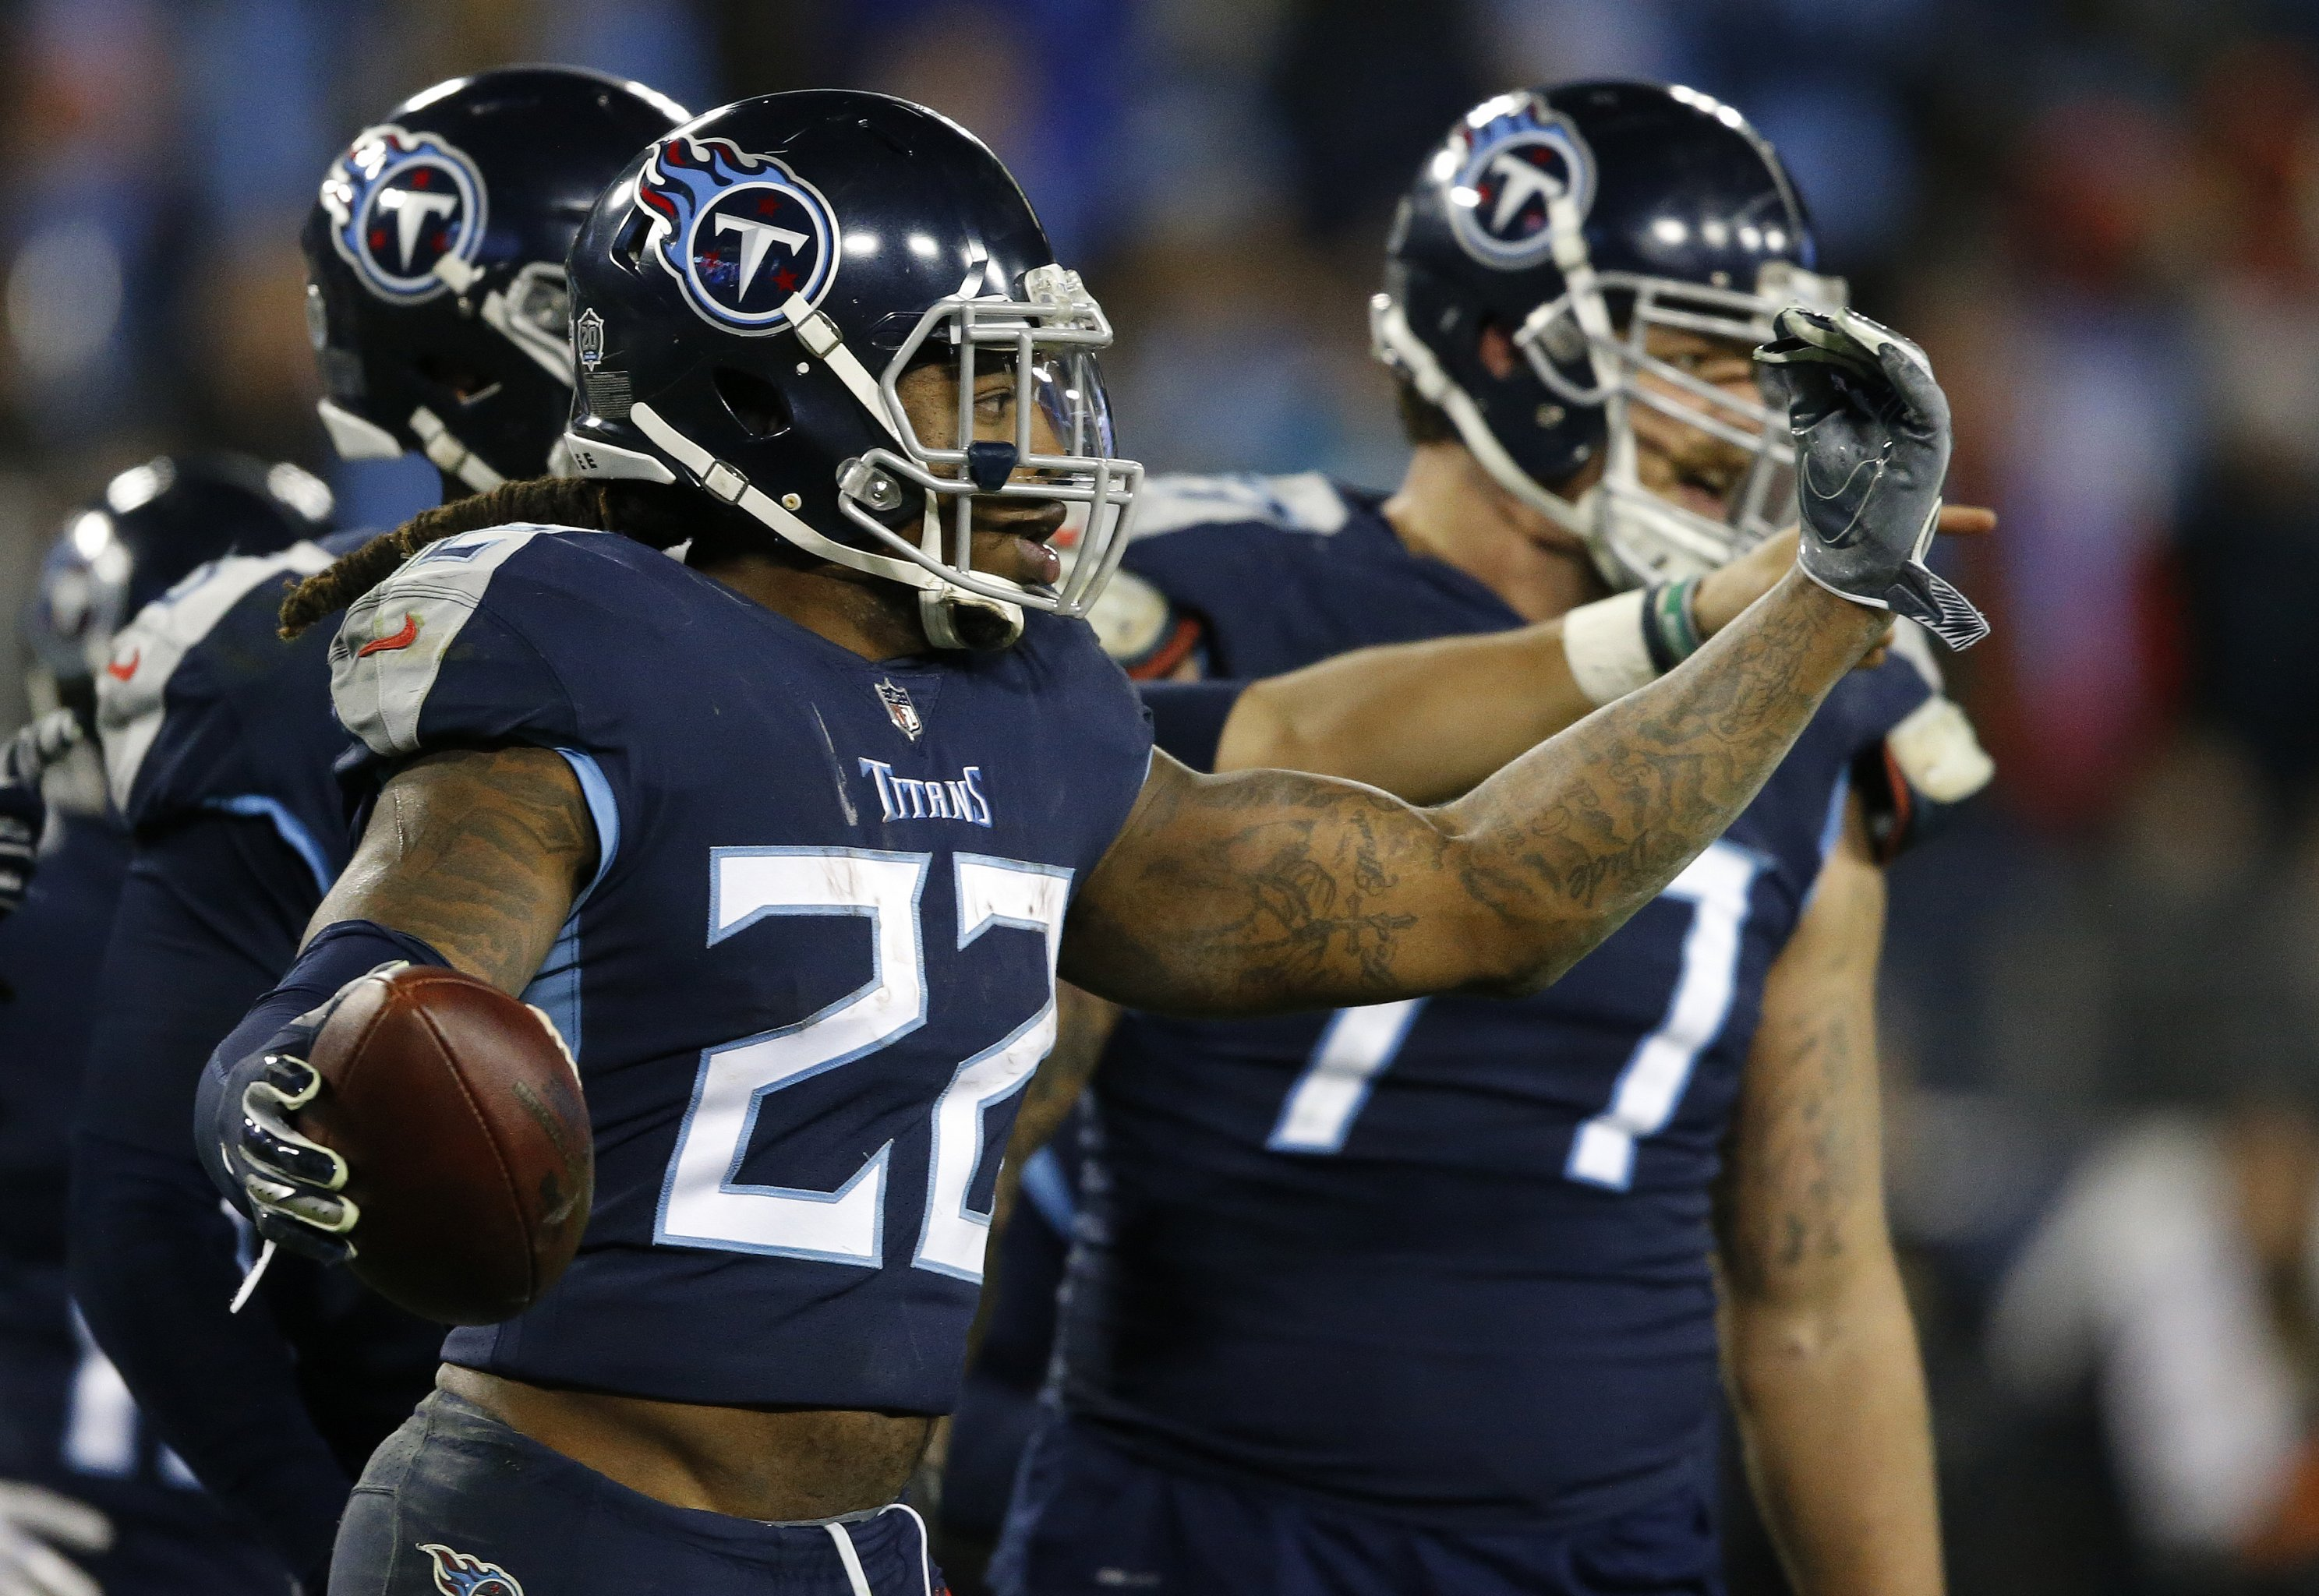 945a2b4a NFL Power Rankings: B/R's Expert Consensus Rank for Every Team ...